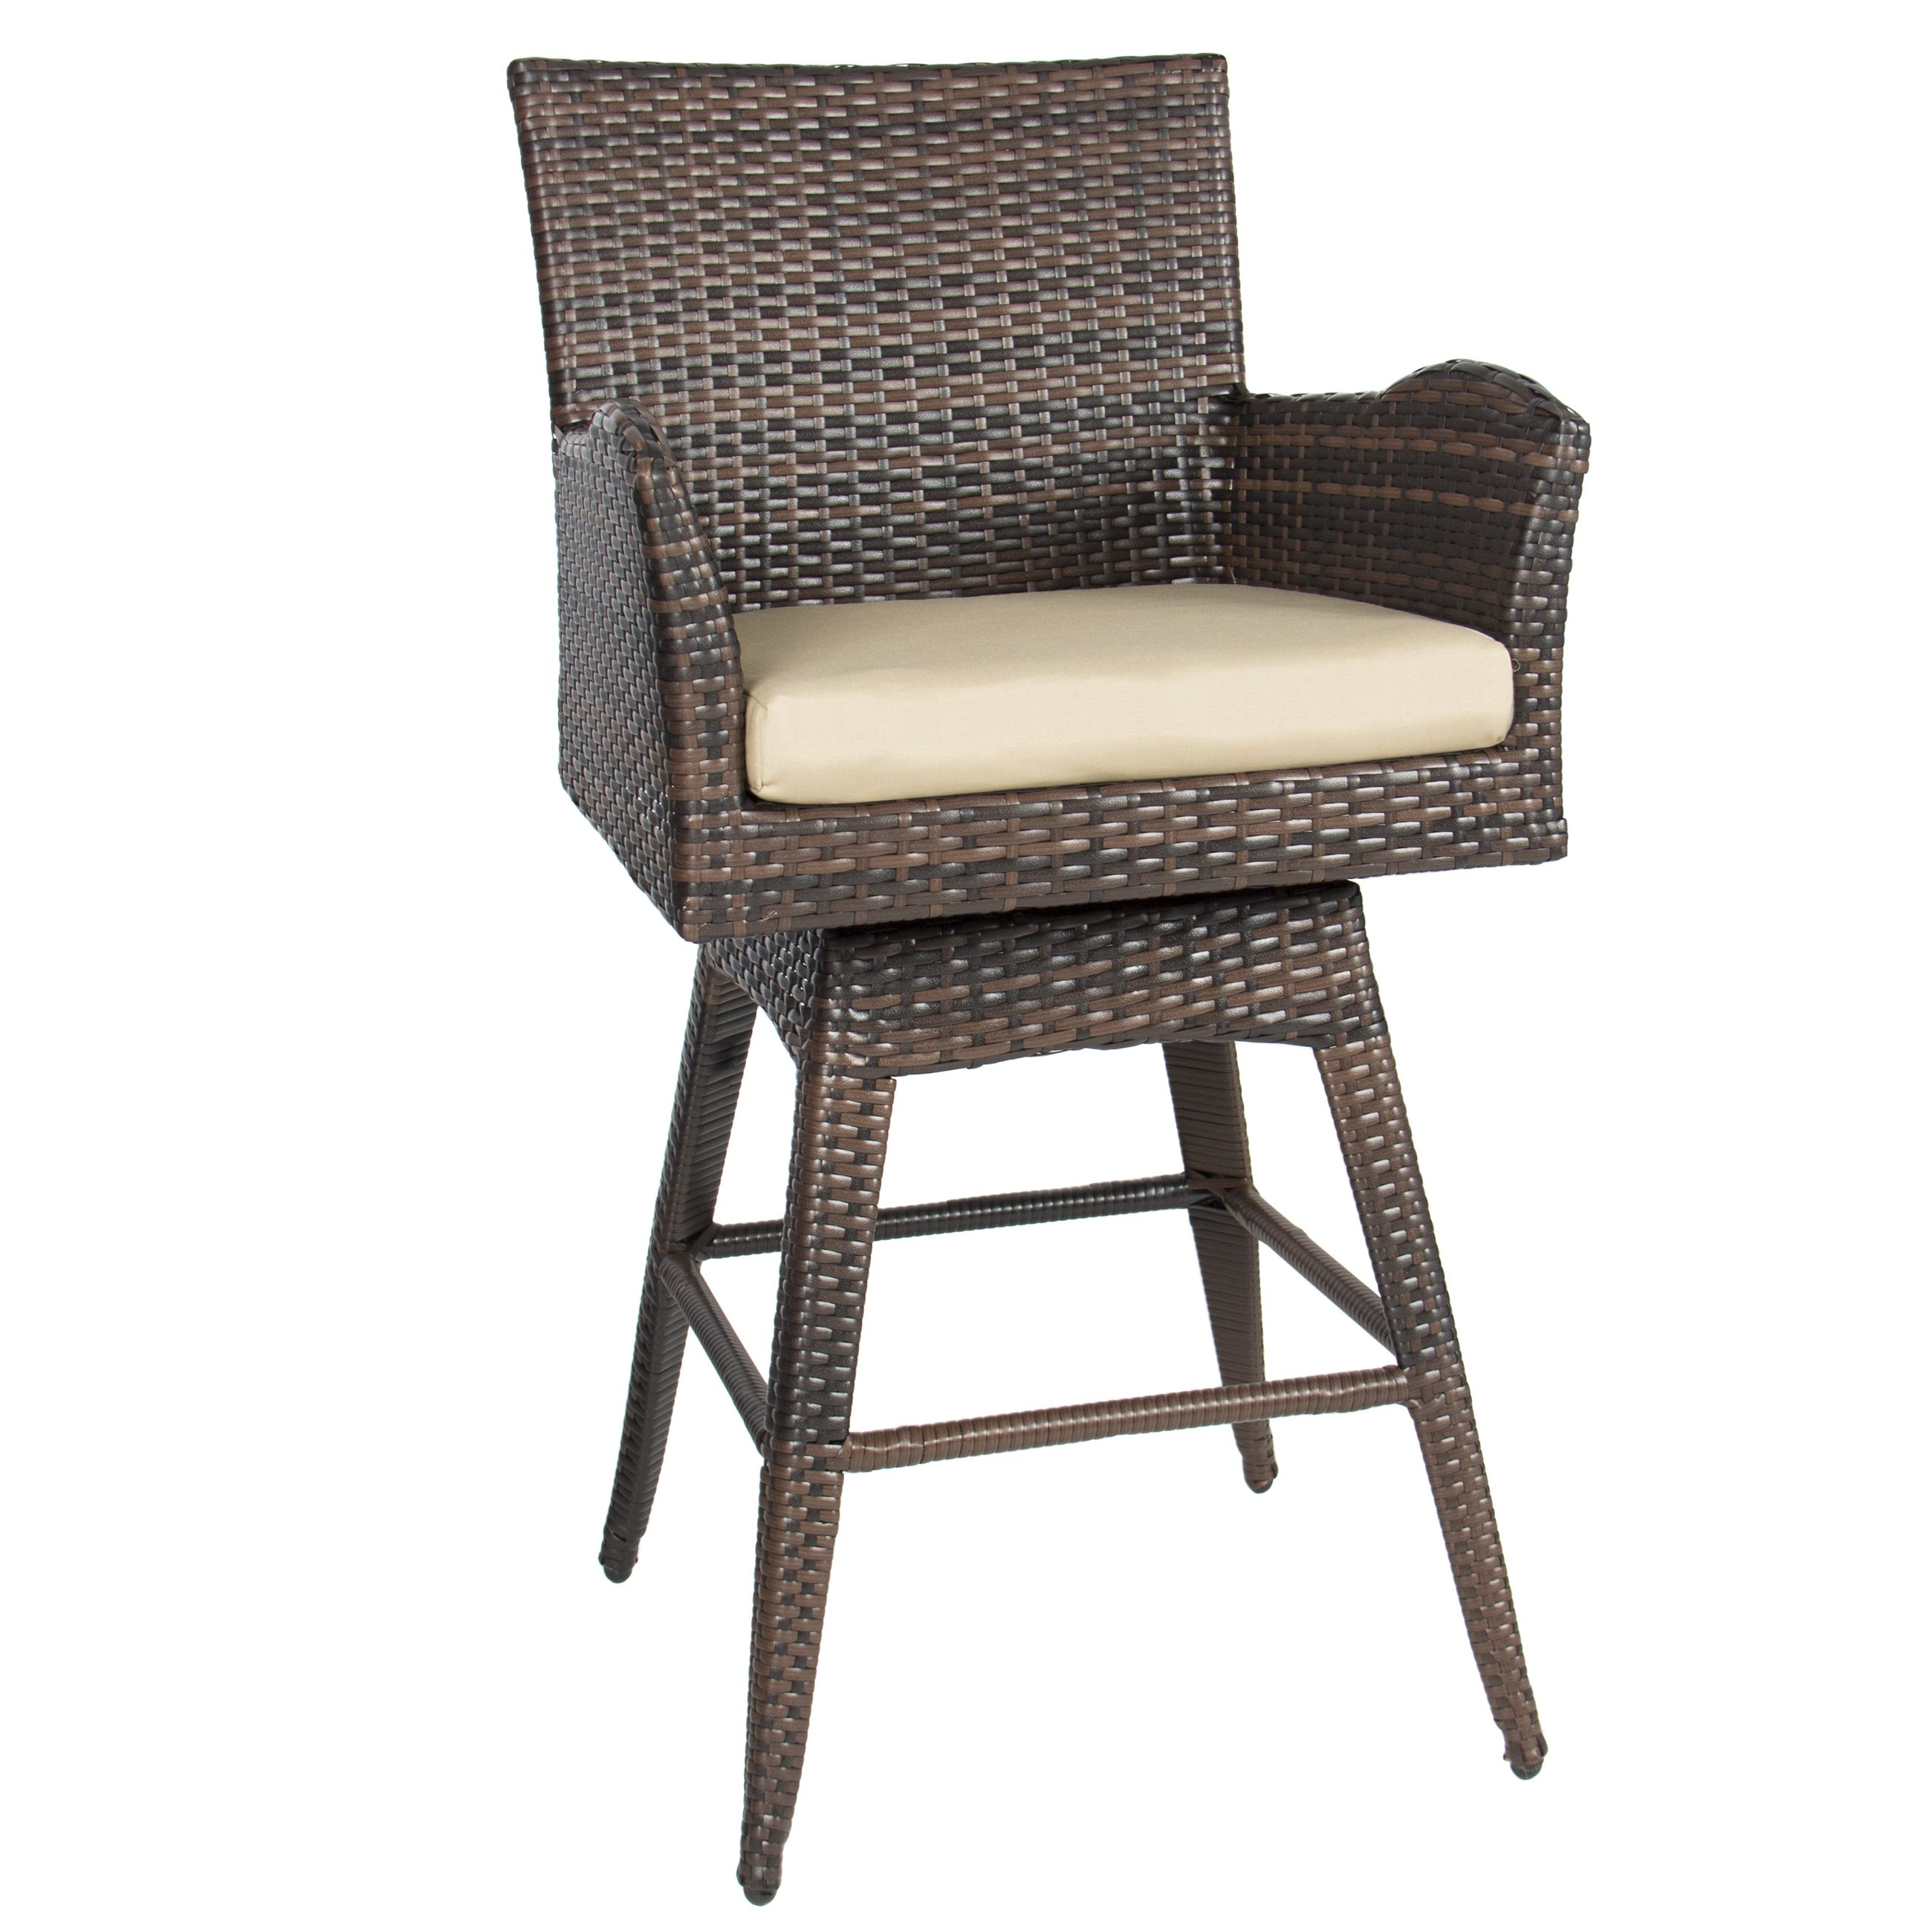 Outdoor Bar Stools With Backs Outdoor Bar Stools Wicker Bar Stools Bar Stools With Backs